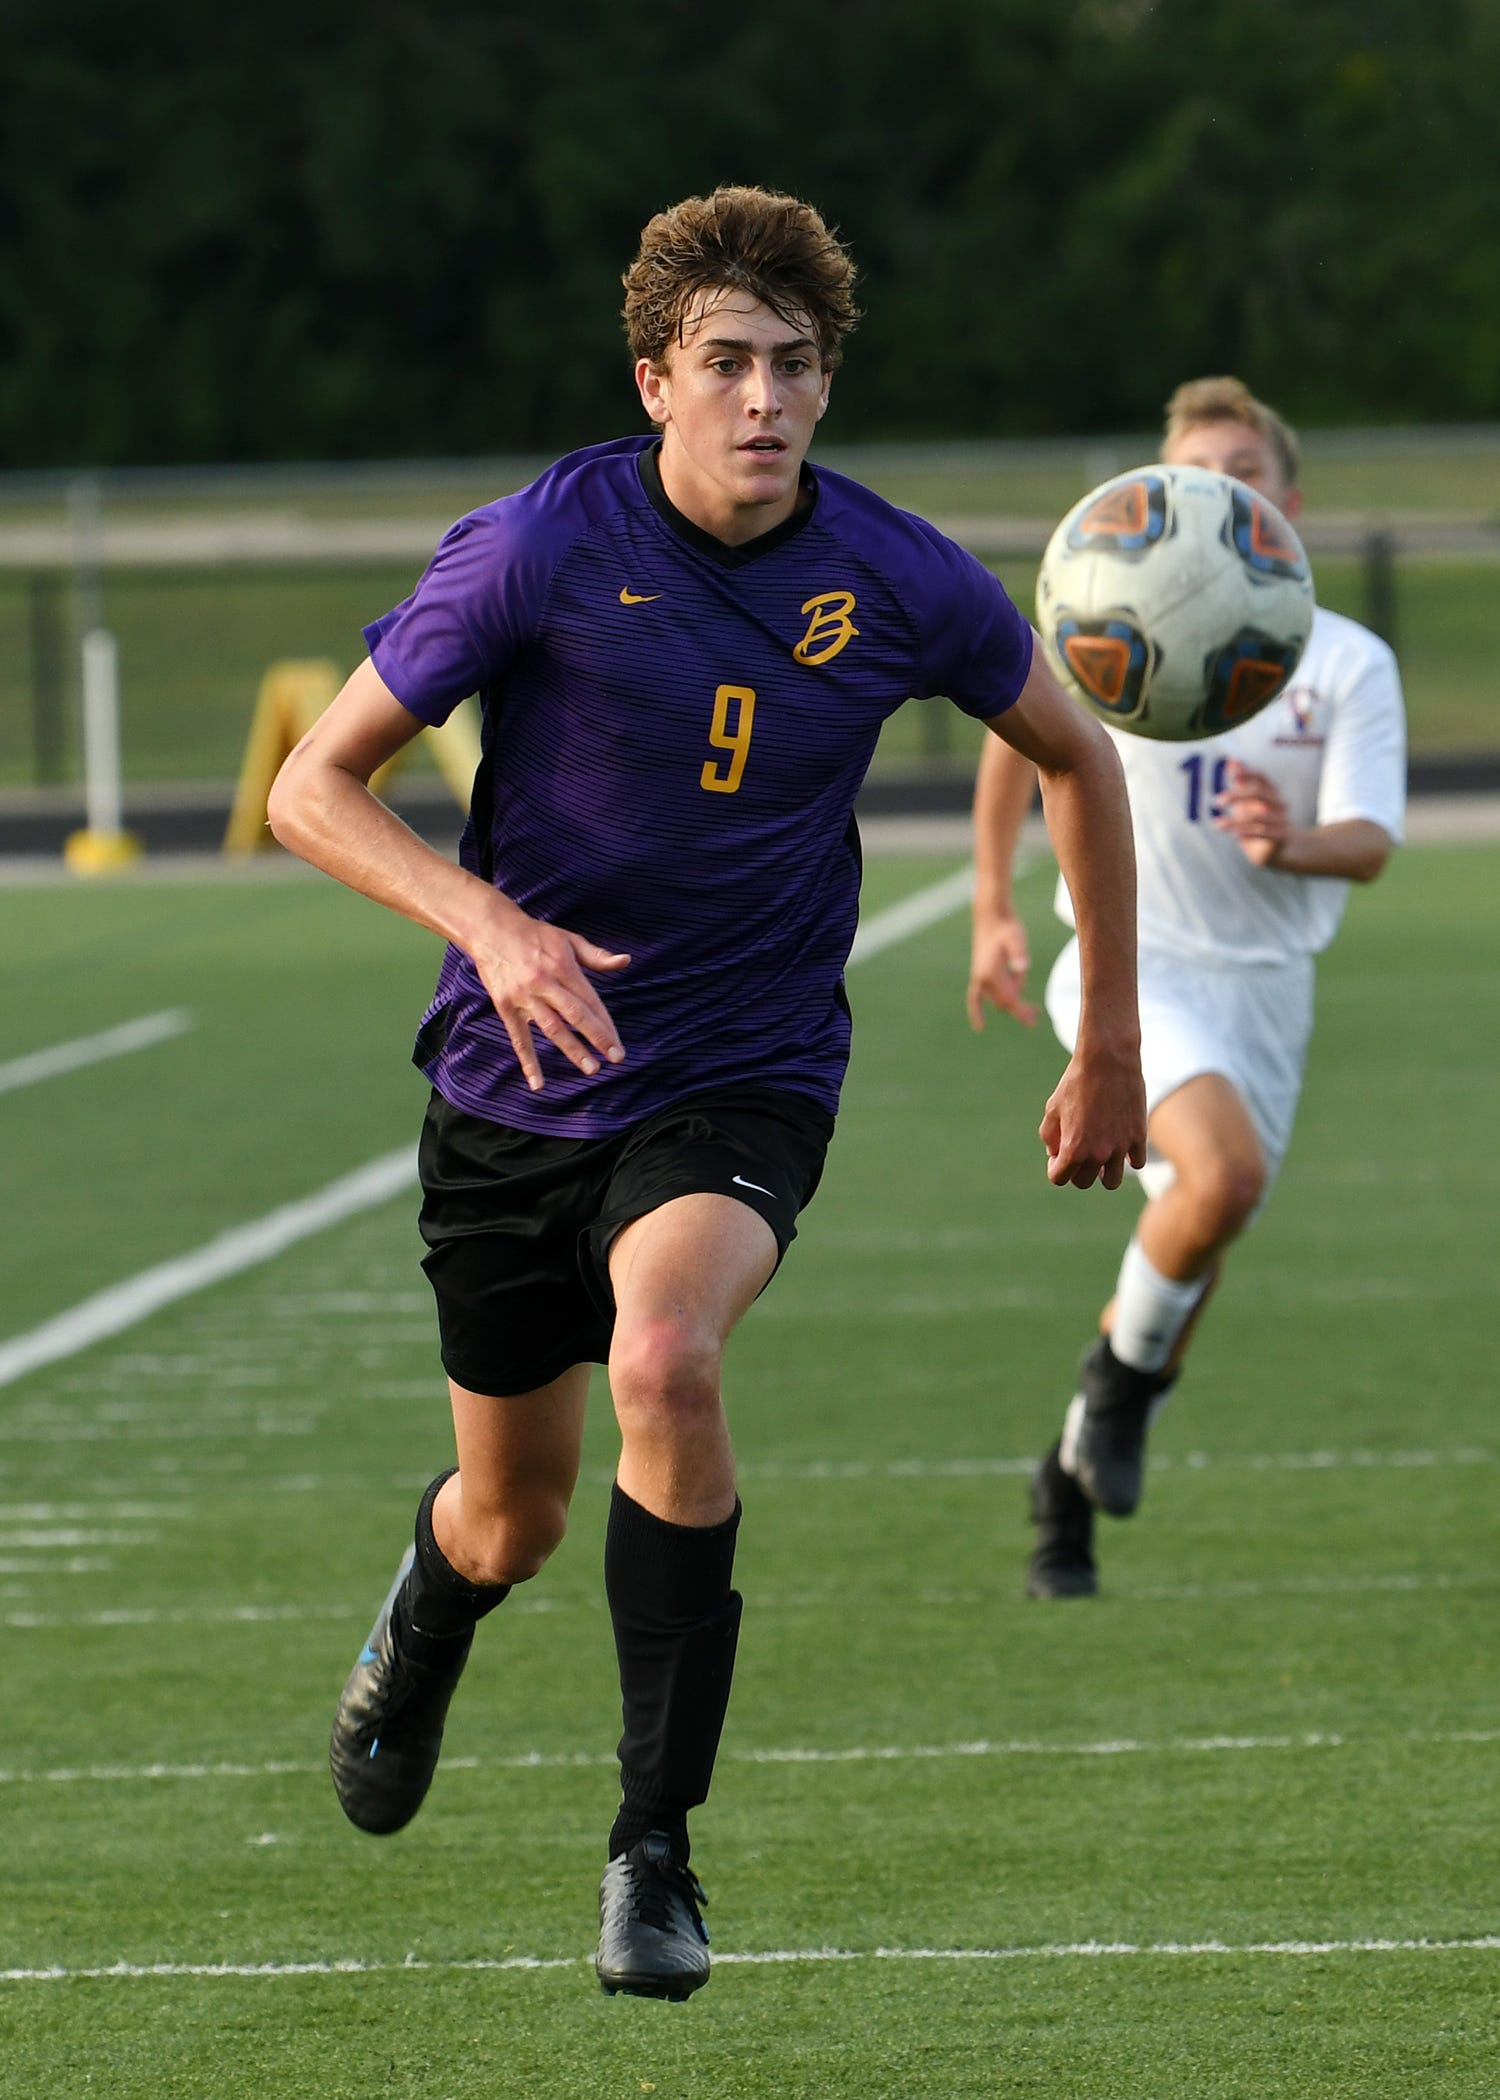 Bellbrook's Trace Terry was second in the Southwestern Buckeye League in points (66) in 2020. He was named second-team All-Ohio.